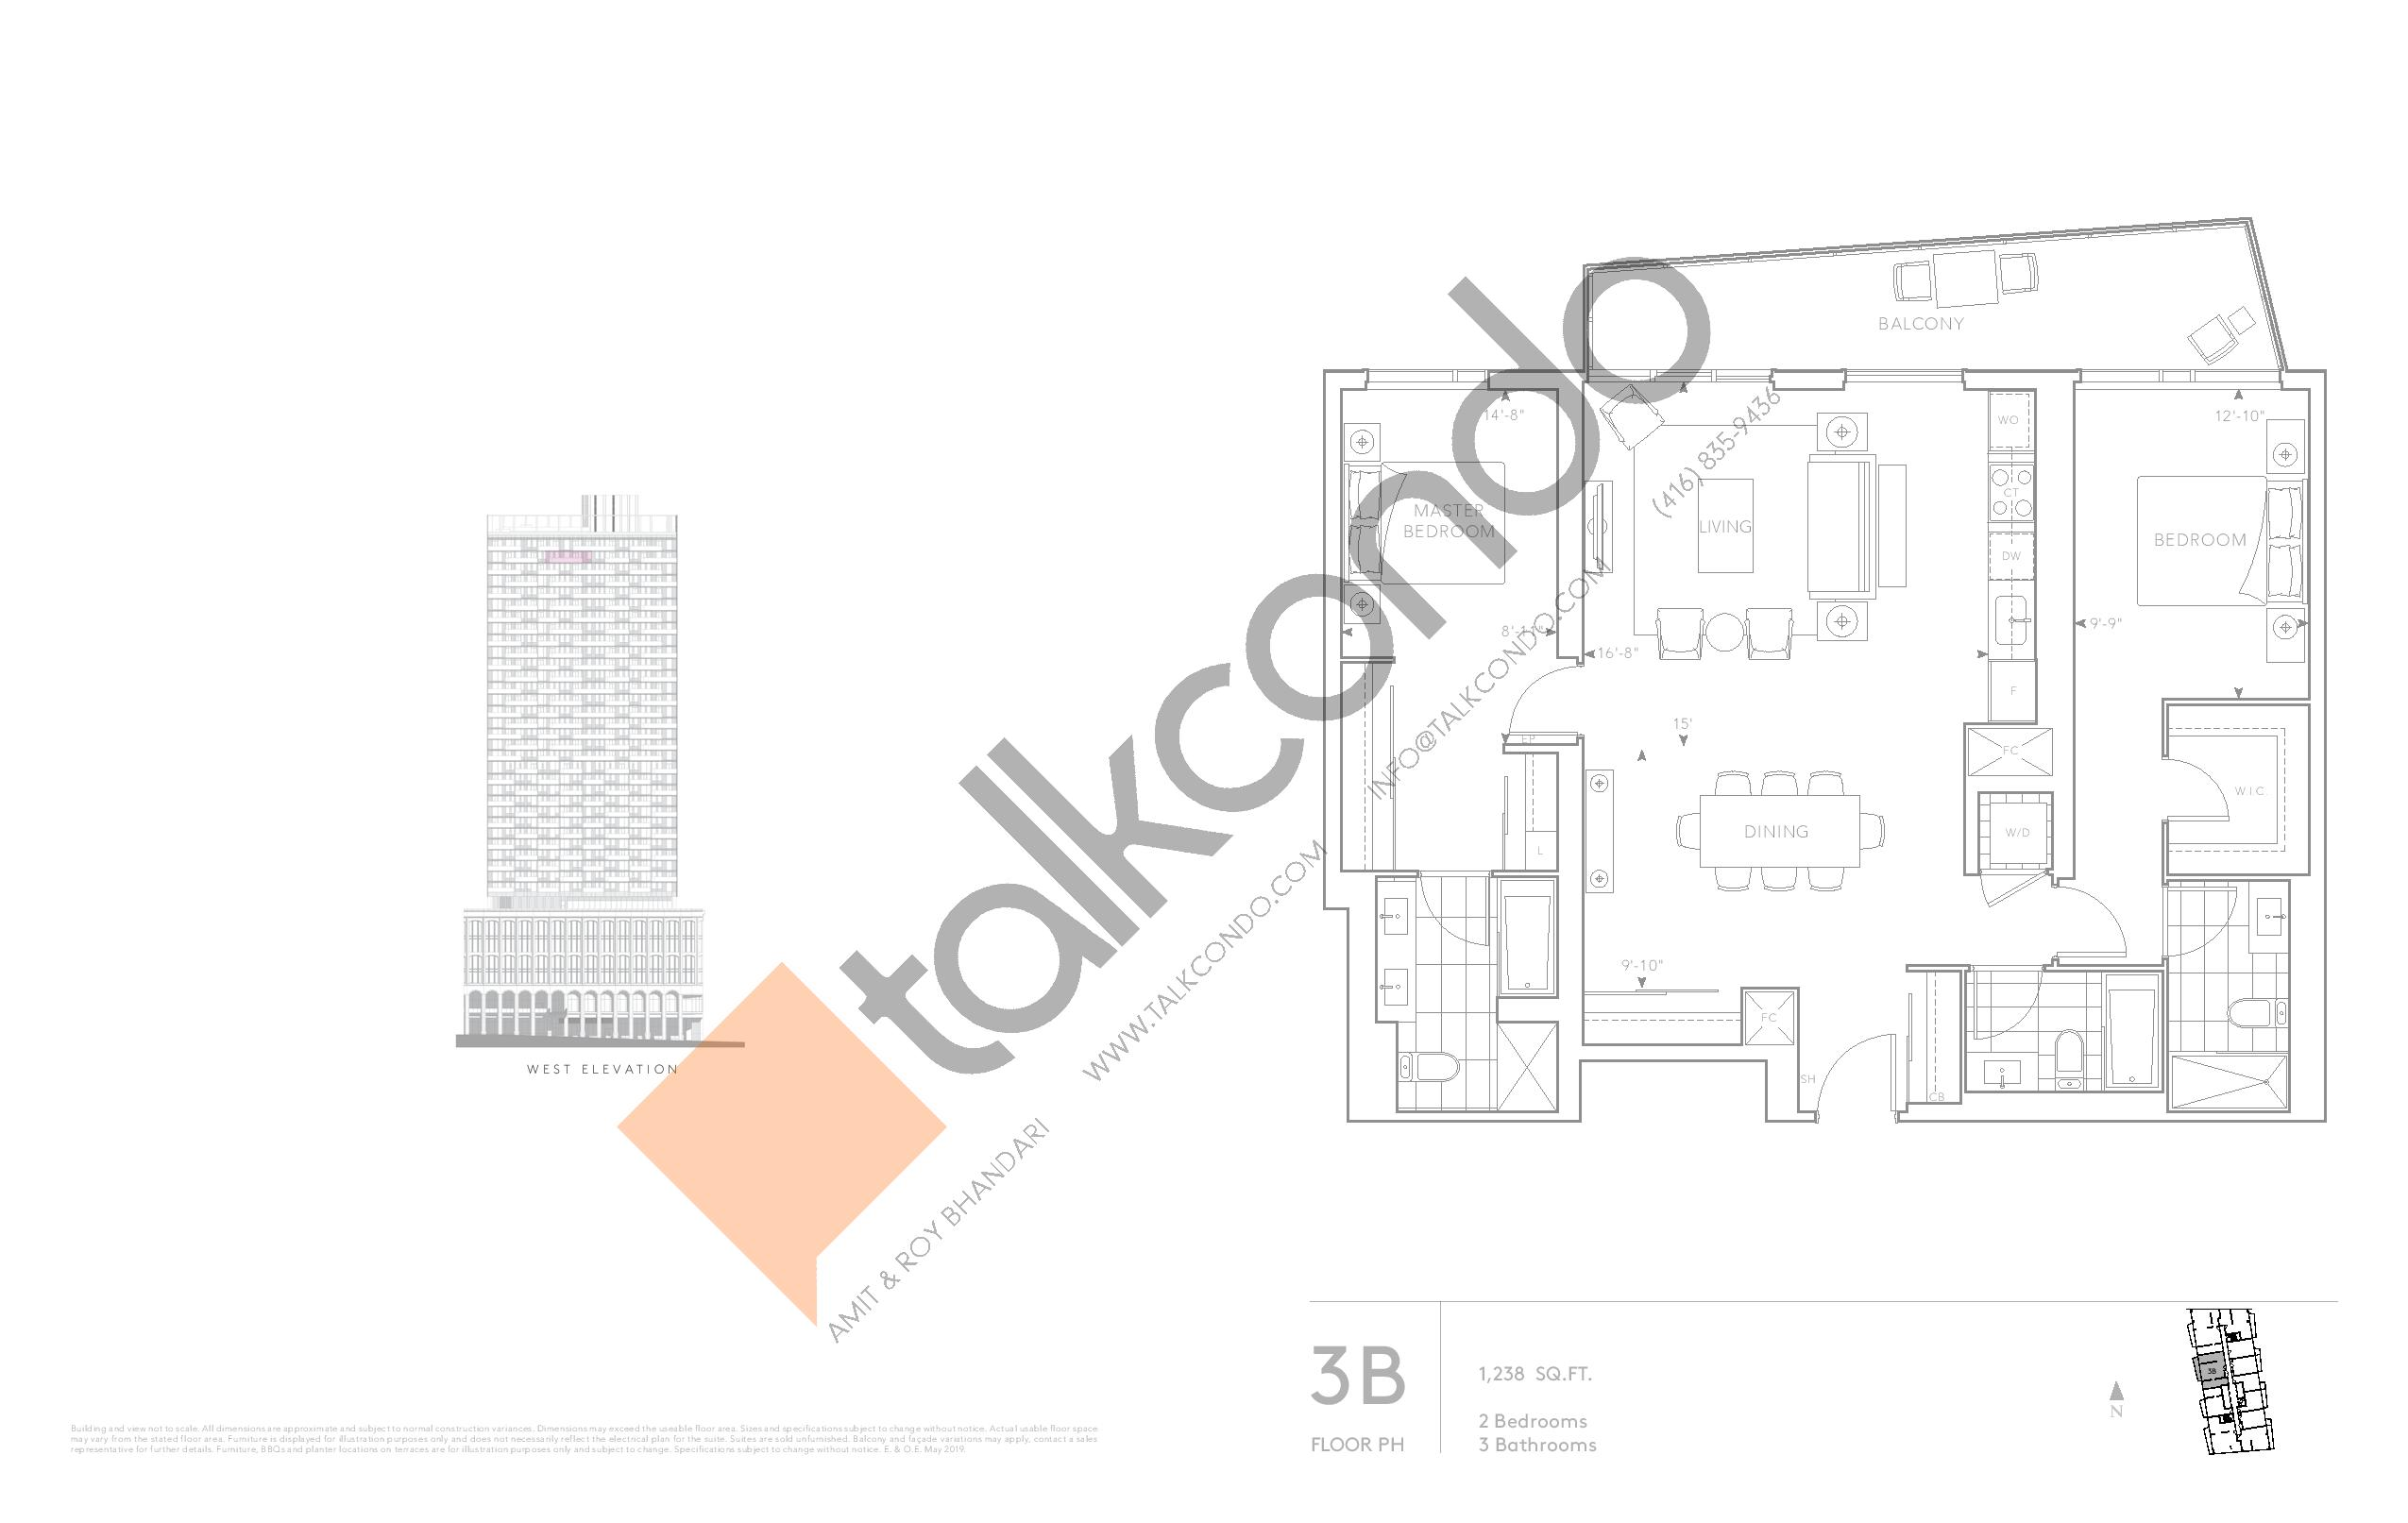 3B - Classic Series Floor Plan at Tridel at The Well Condos - 1238 sq.ft